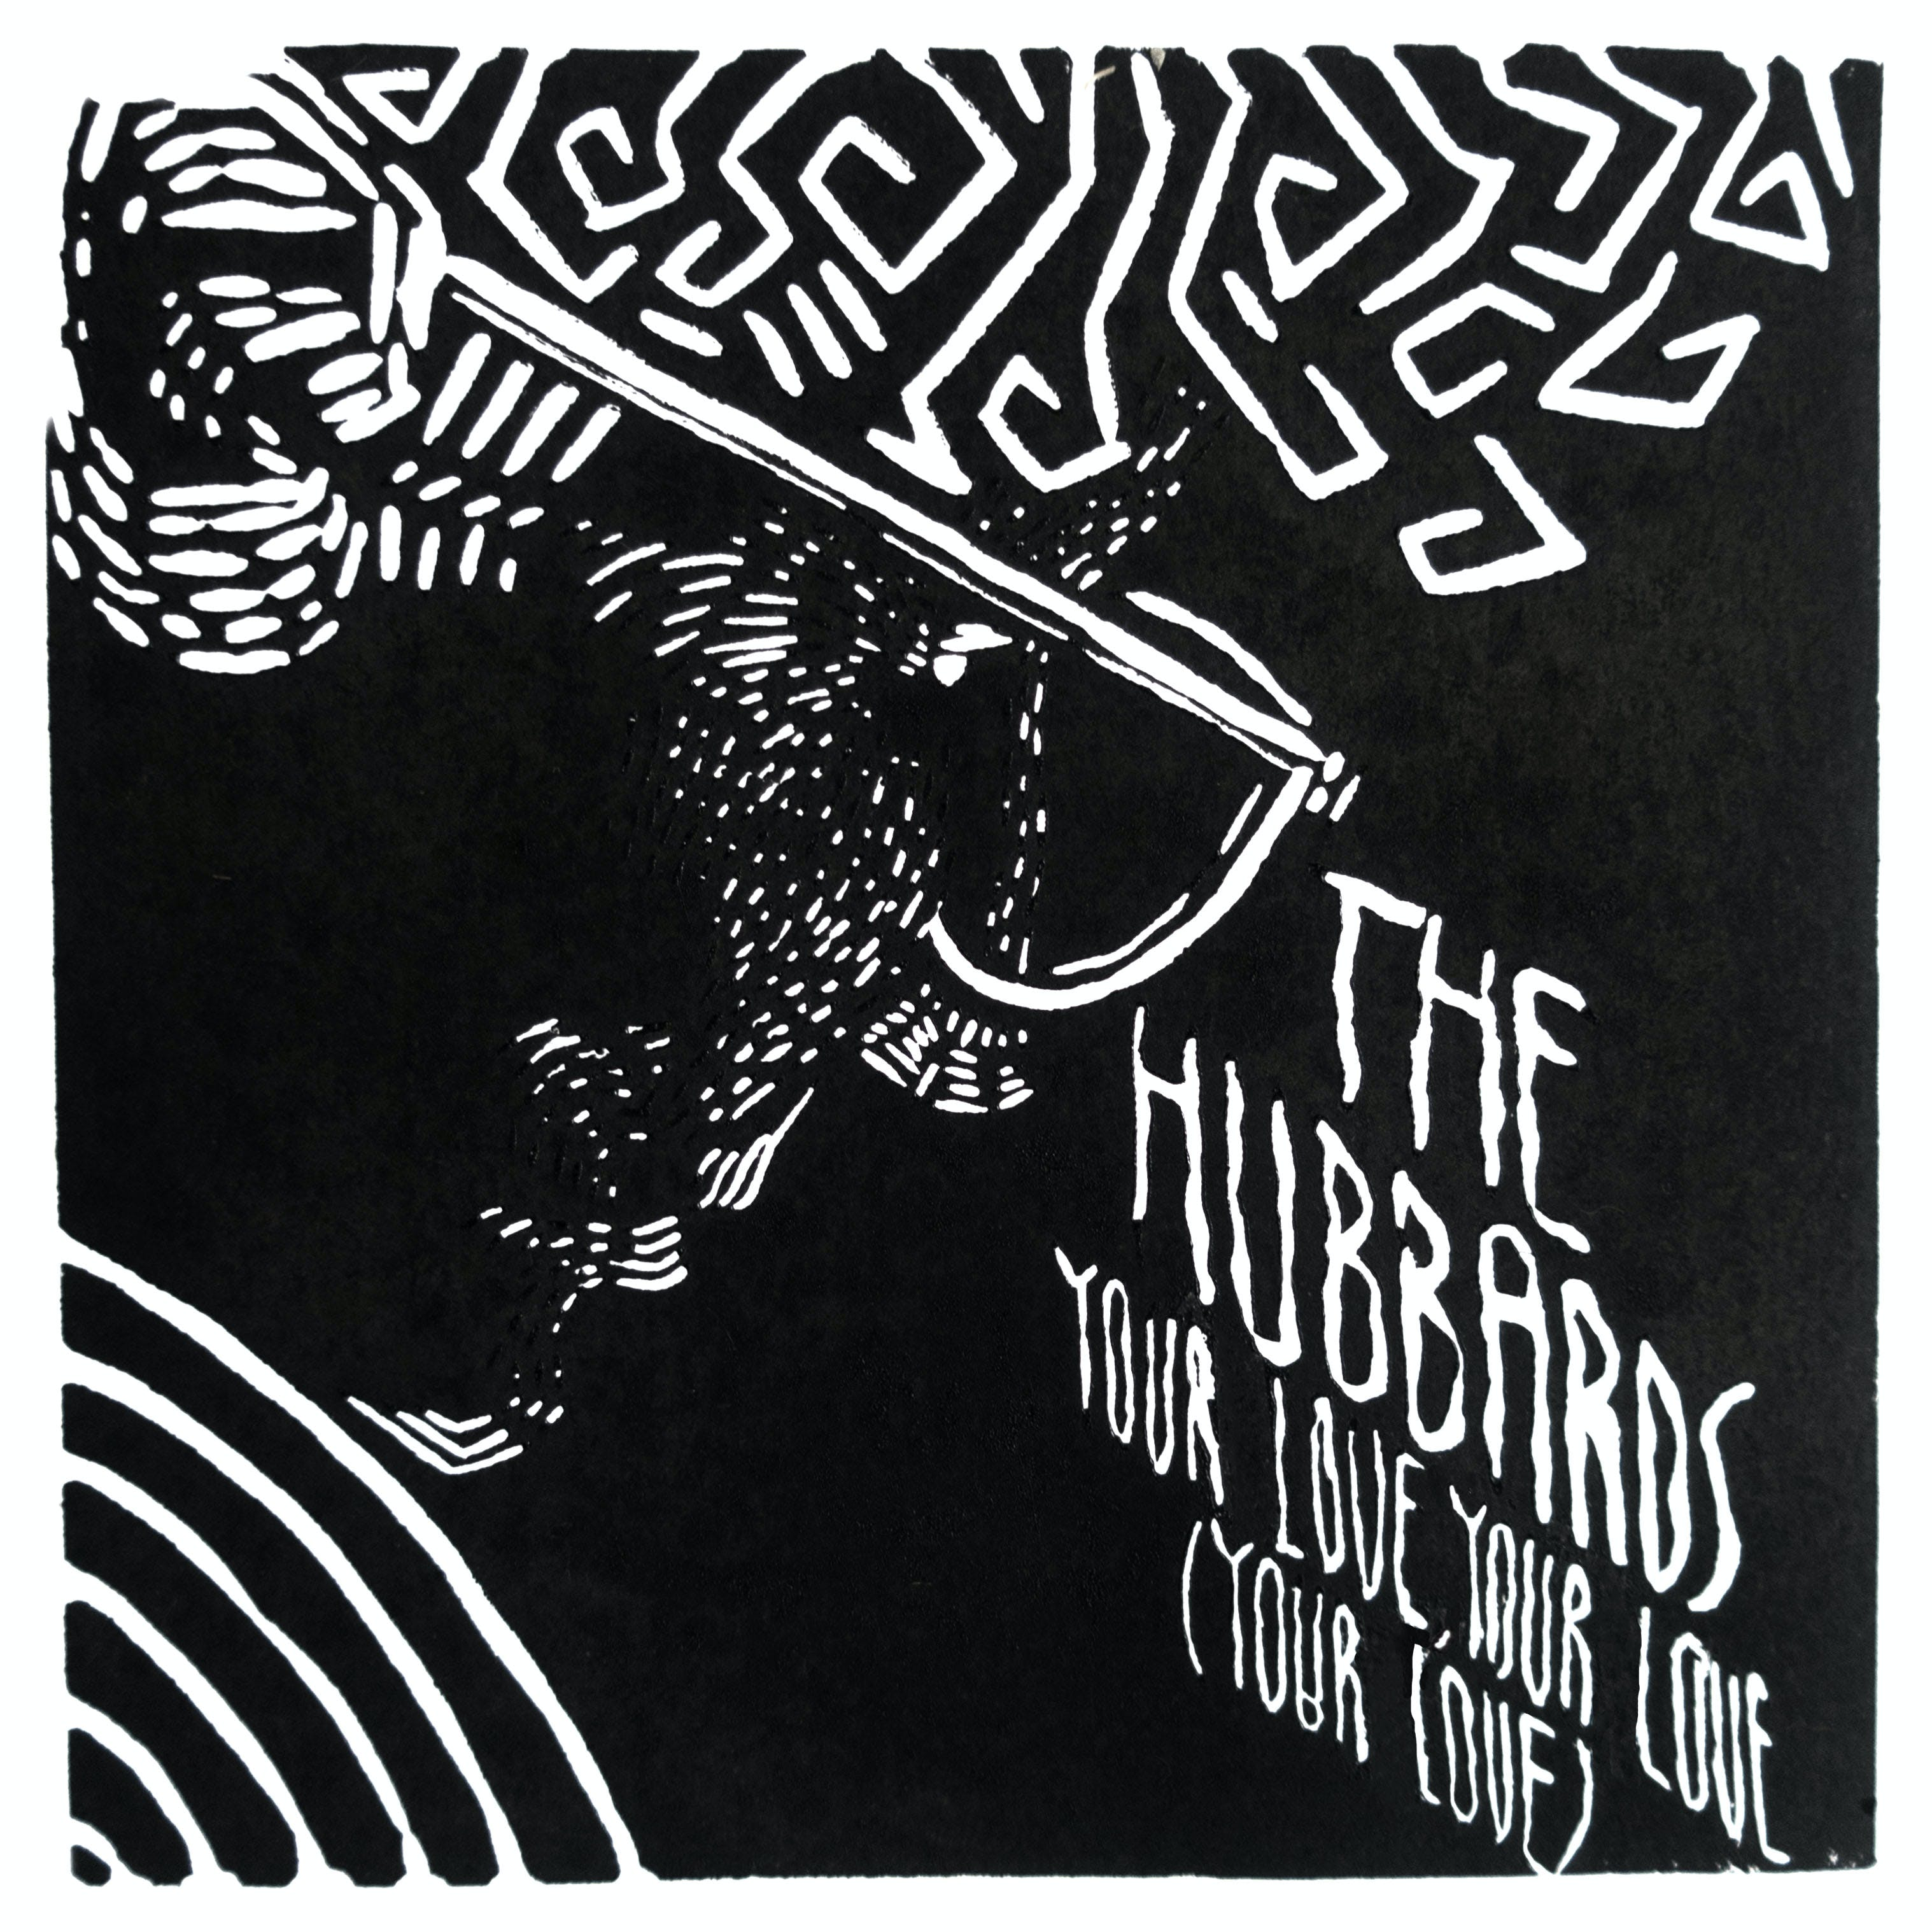 The Hubbards – Your Love, Your Love (Your Love)